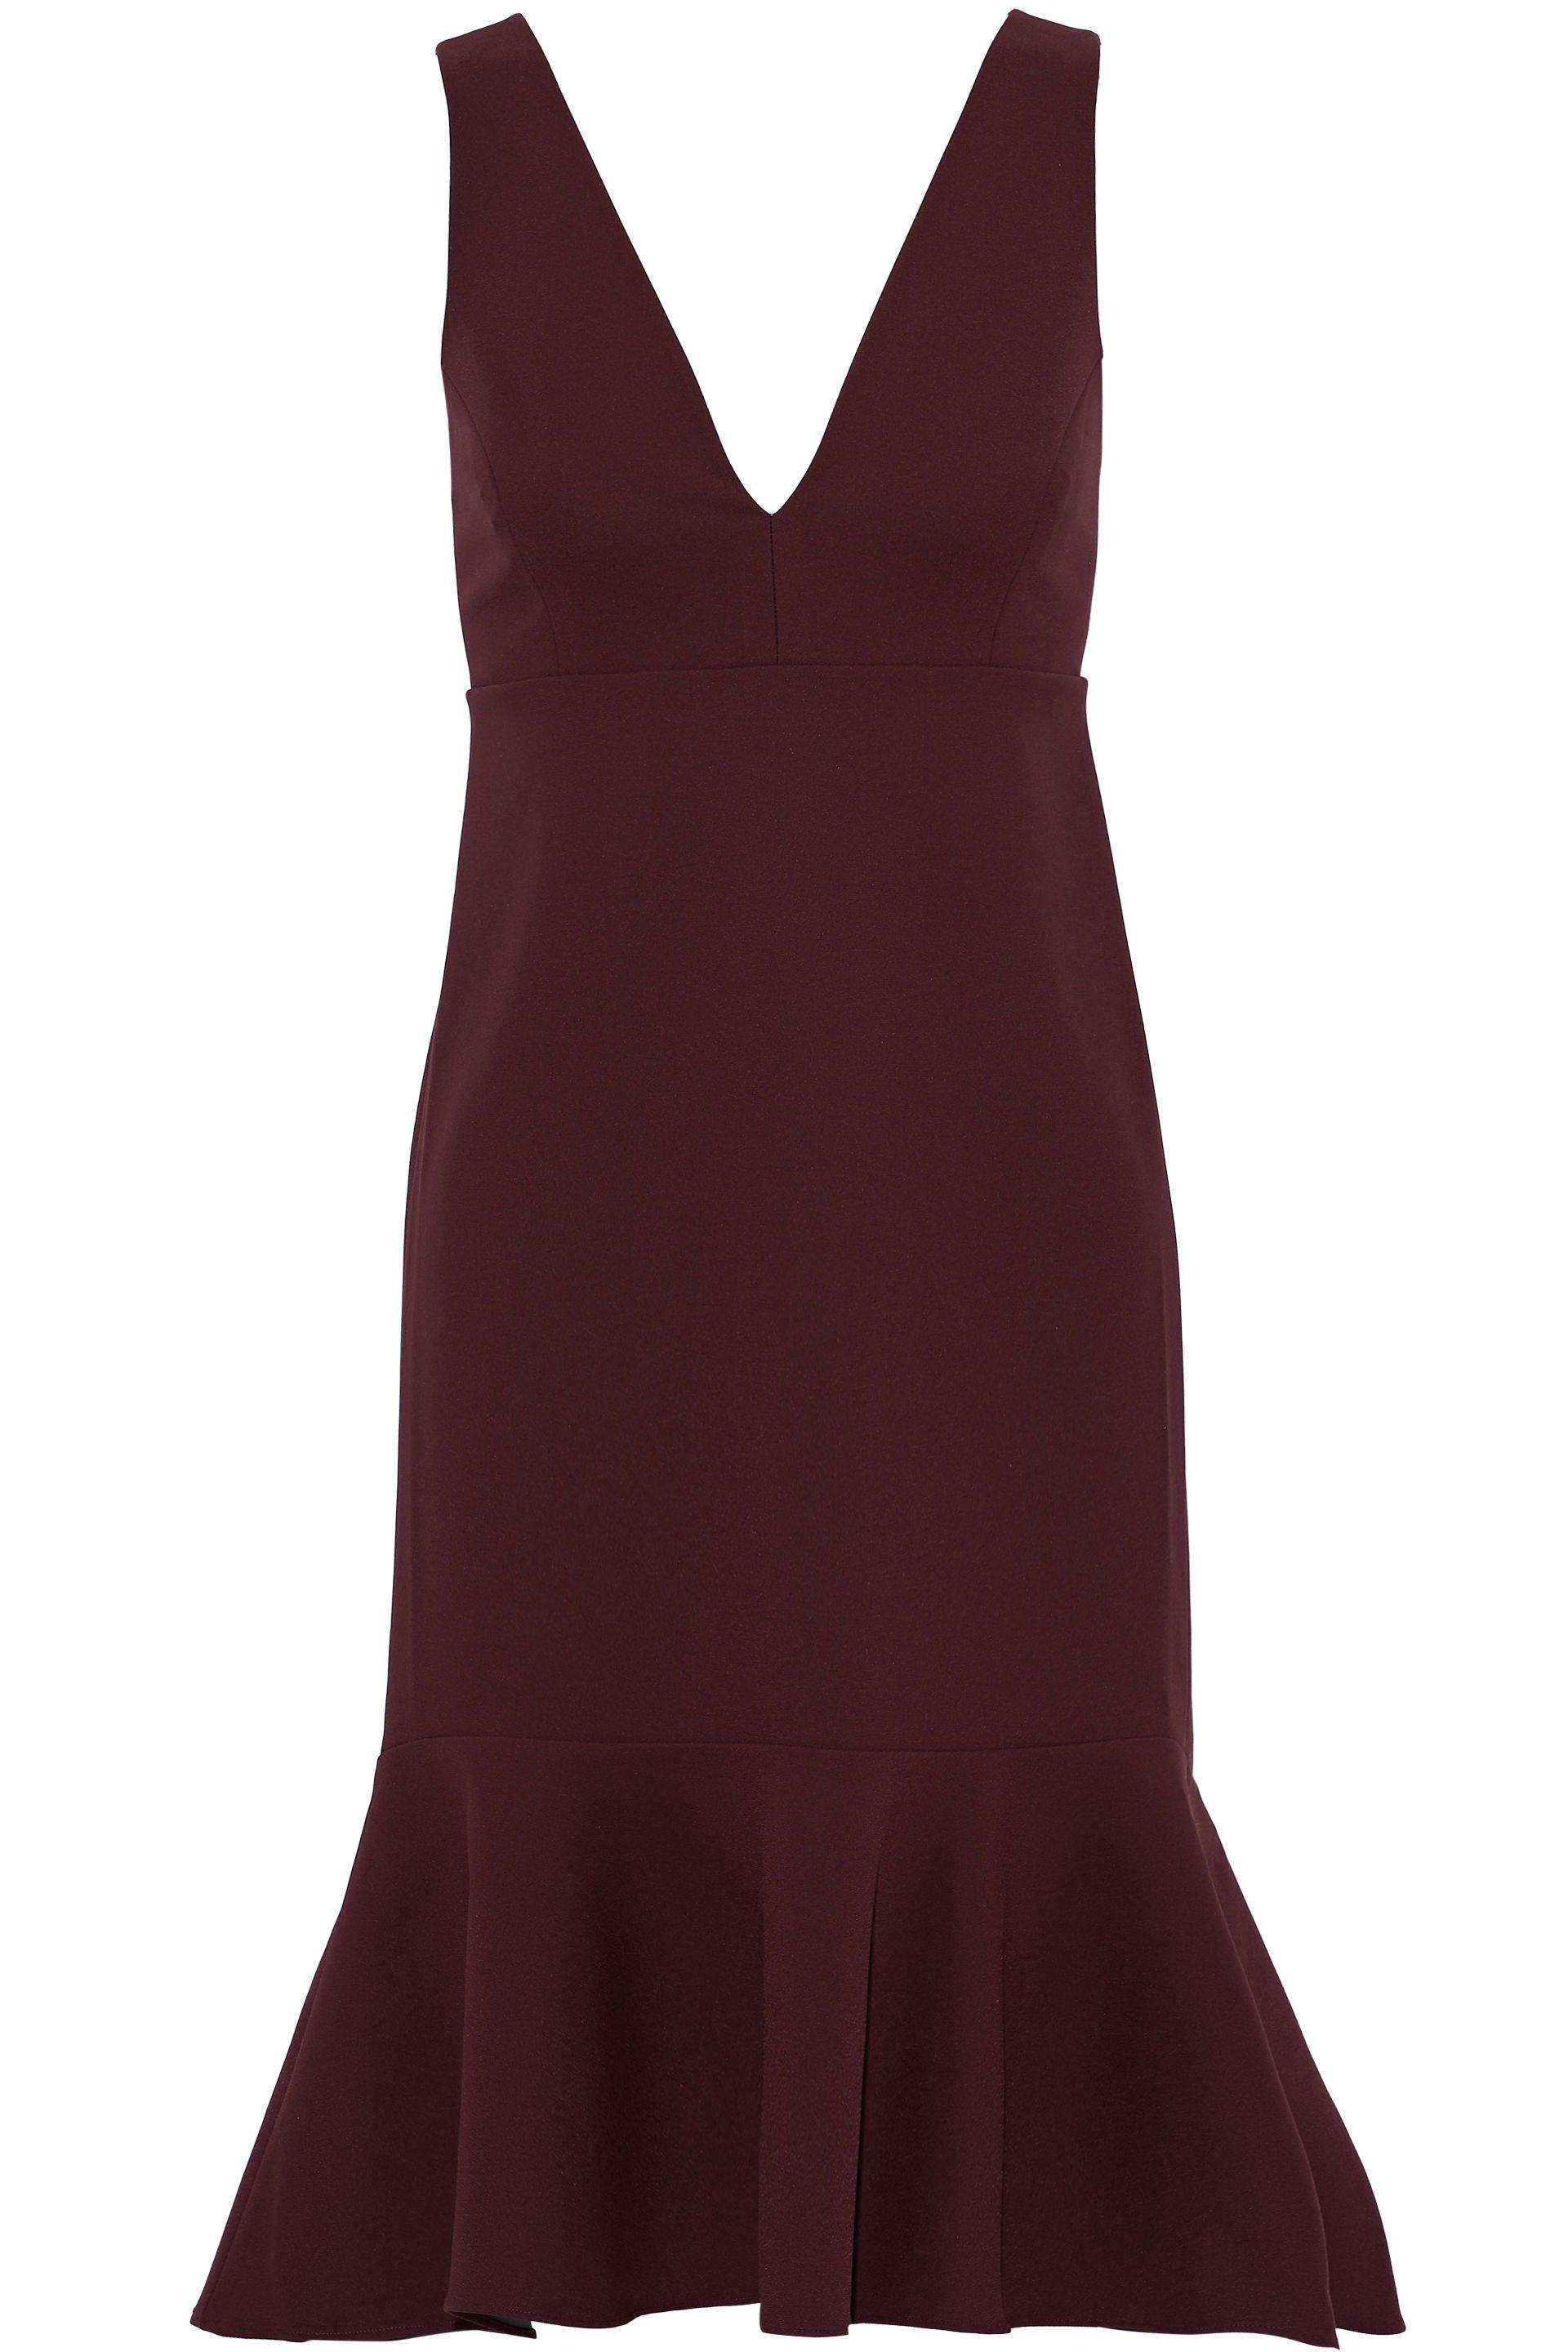 Iris & Ink Woman Renalda Fluted Stretch-ponte Dress Black Size XL IRIS & INK Sale Low Shipping Fee Footaction Clearance Low Price Original Sale Online Buy Cheap Best kK83qoF